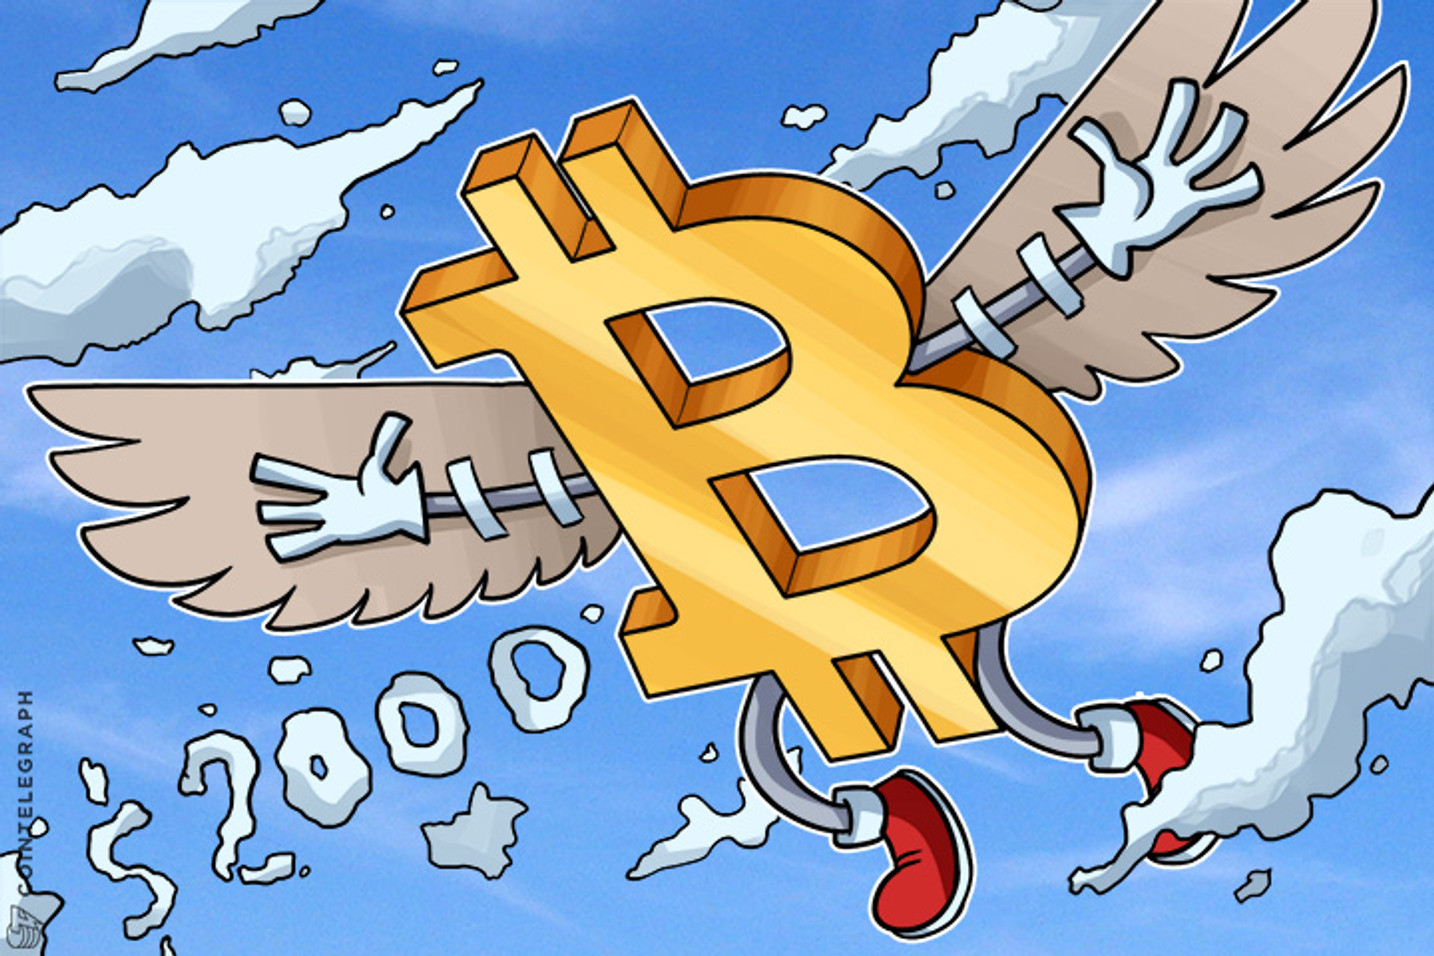 Bitcoin Price Breached $2,000, Pundits Coin-Flip What Comes Next